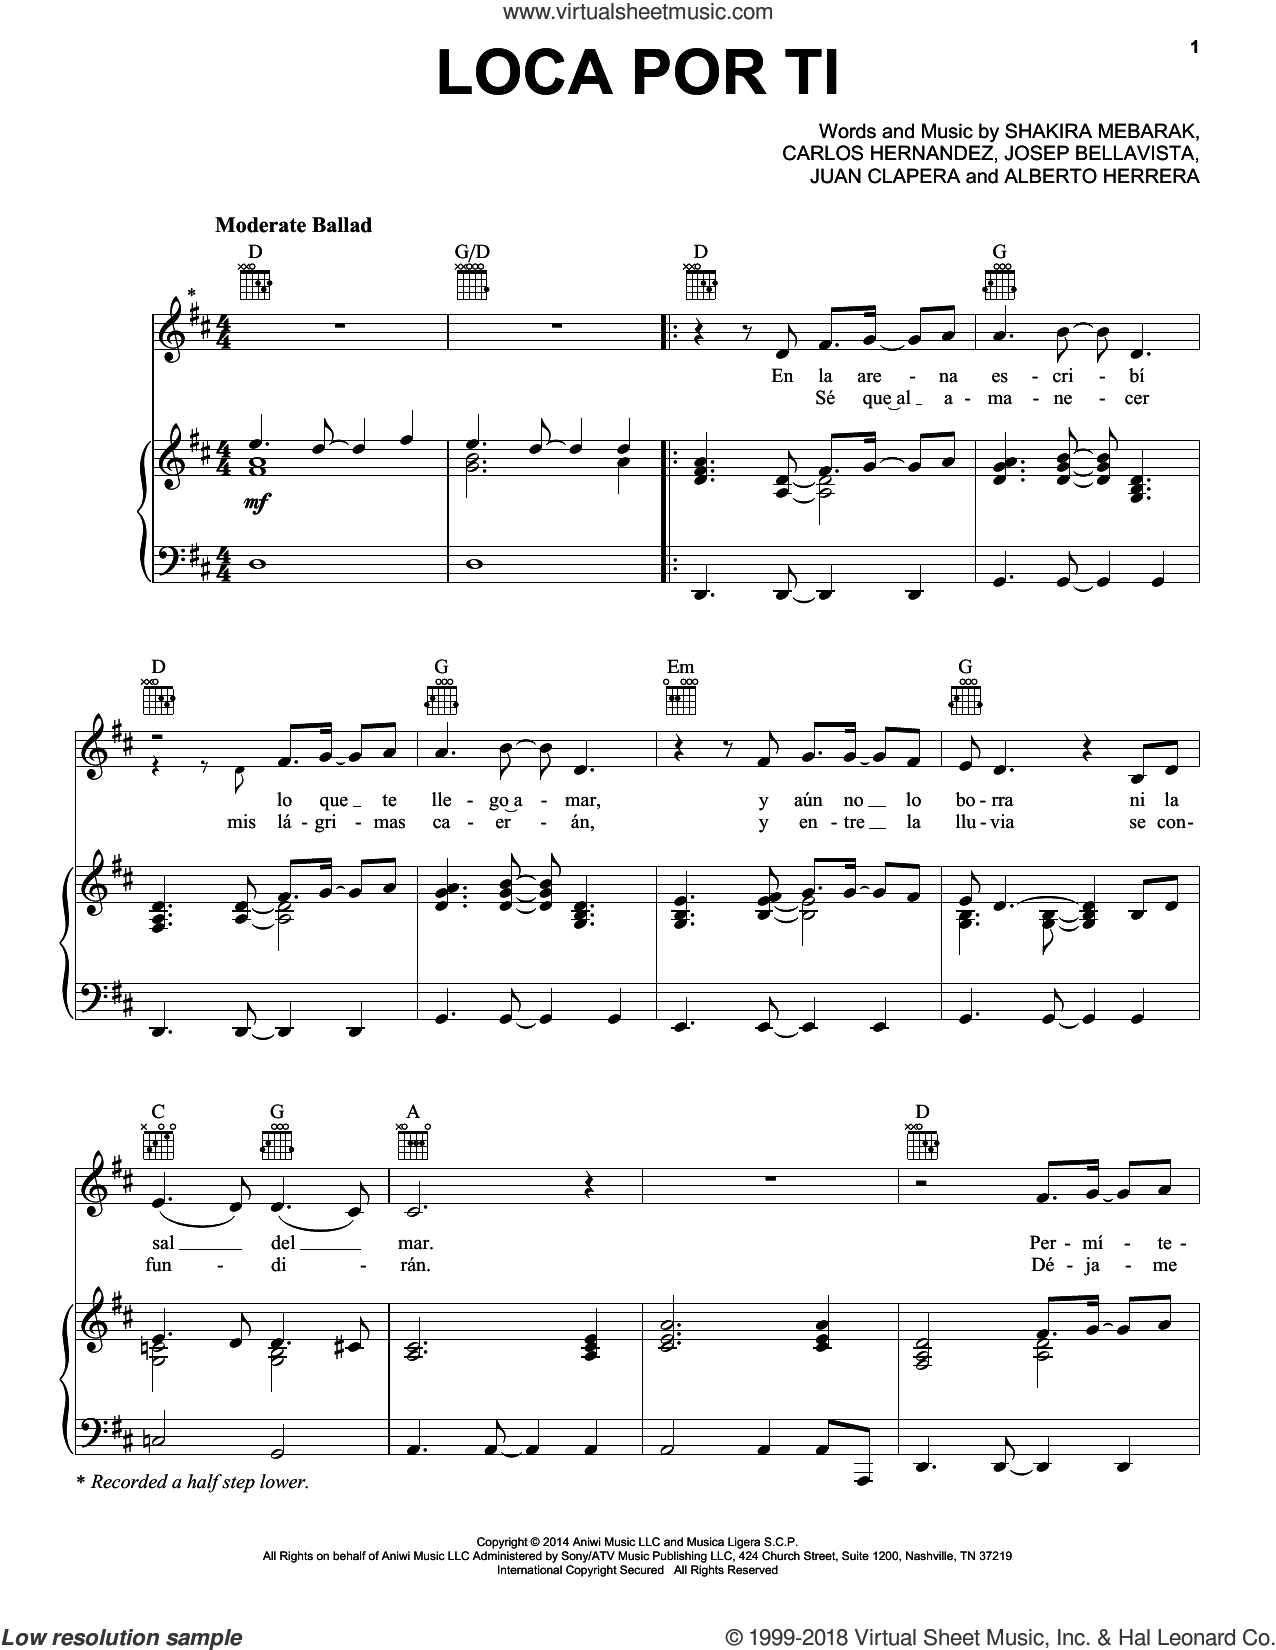 Loca Por Ti sheet music for voice, piano or guitar by Shakira Mebarak and Shakira. Score Image Preview.